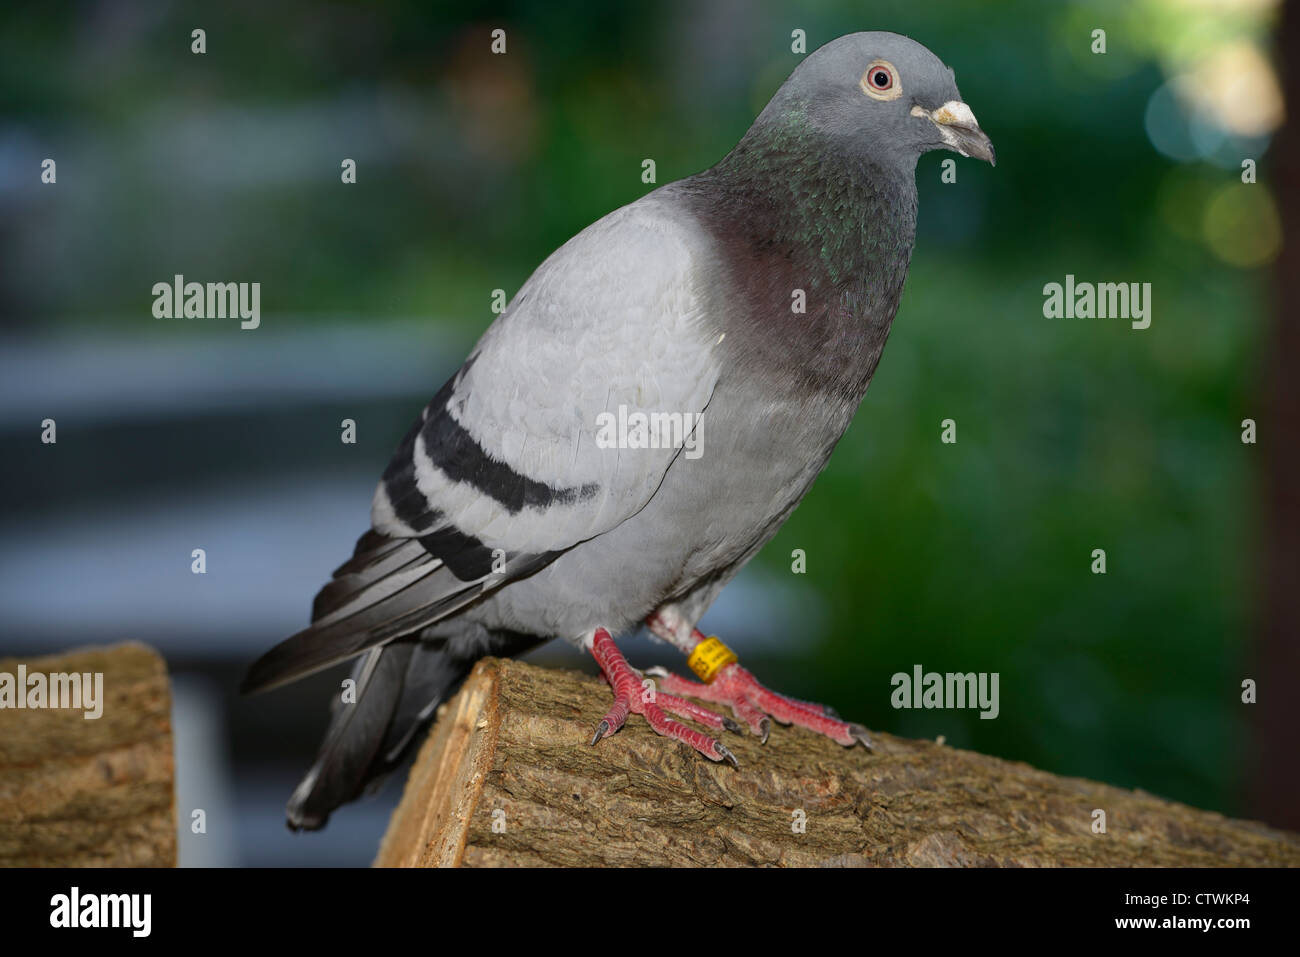 Racing homer pigeon with foot tag on wood pile in Toronto - Stock Image